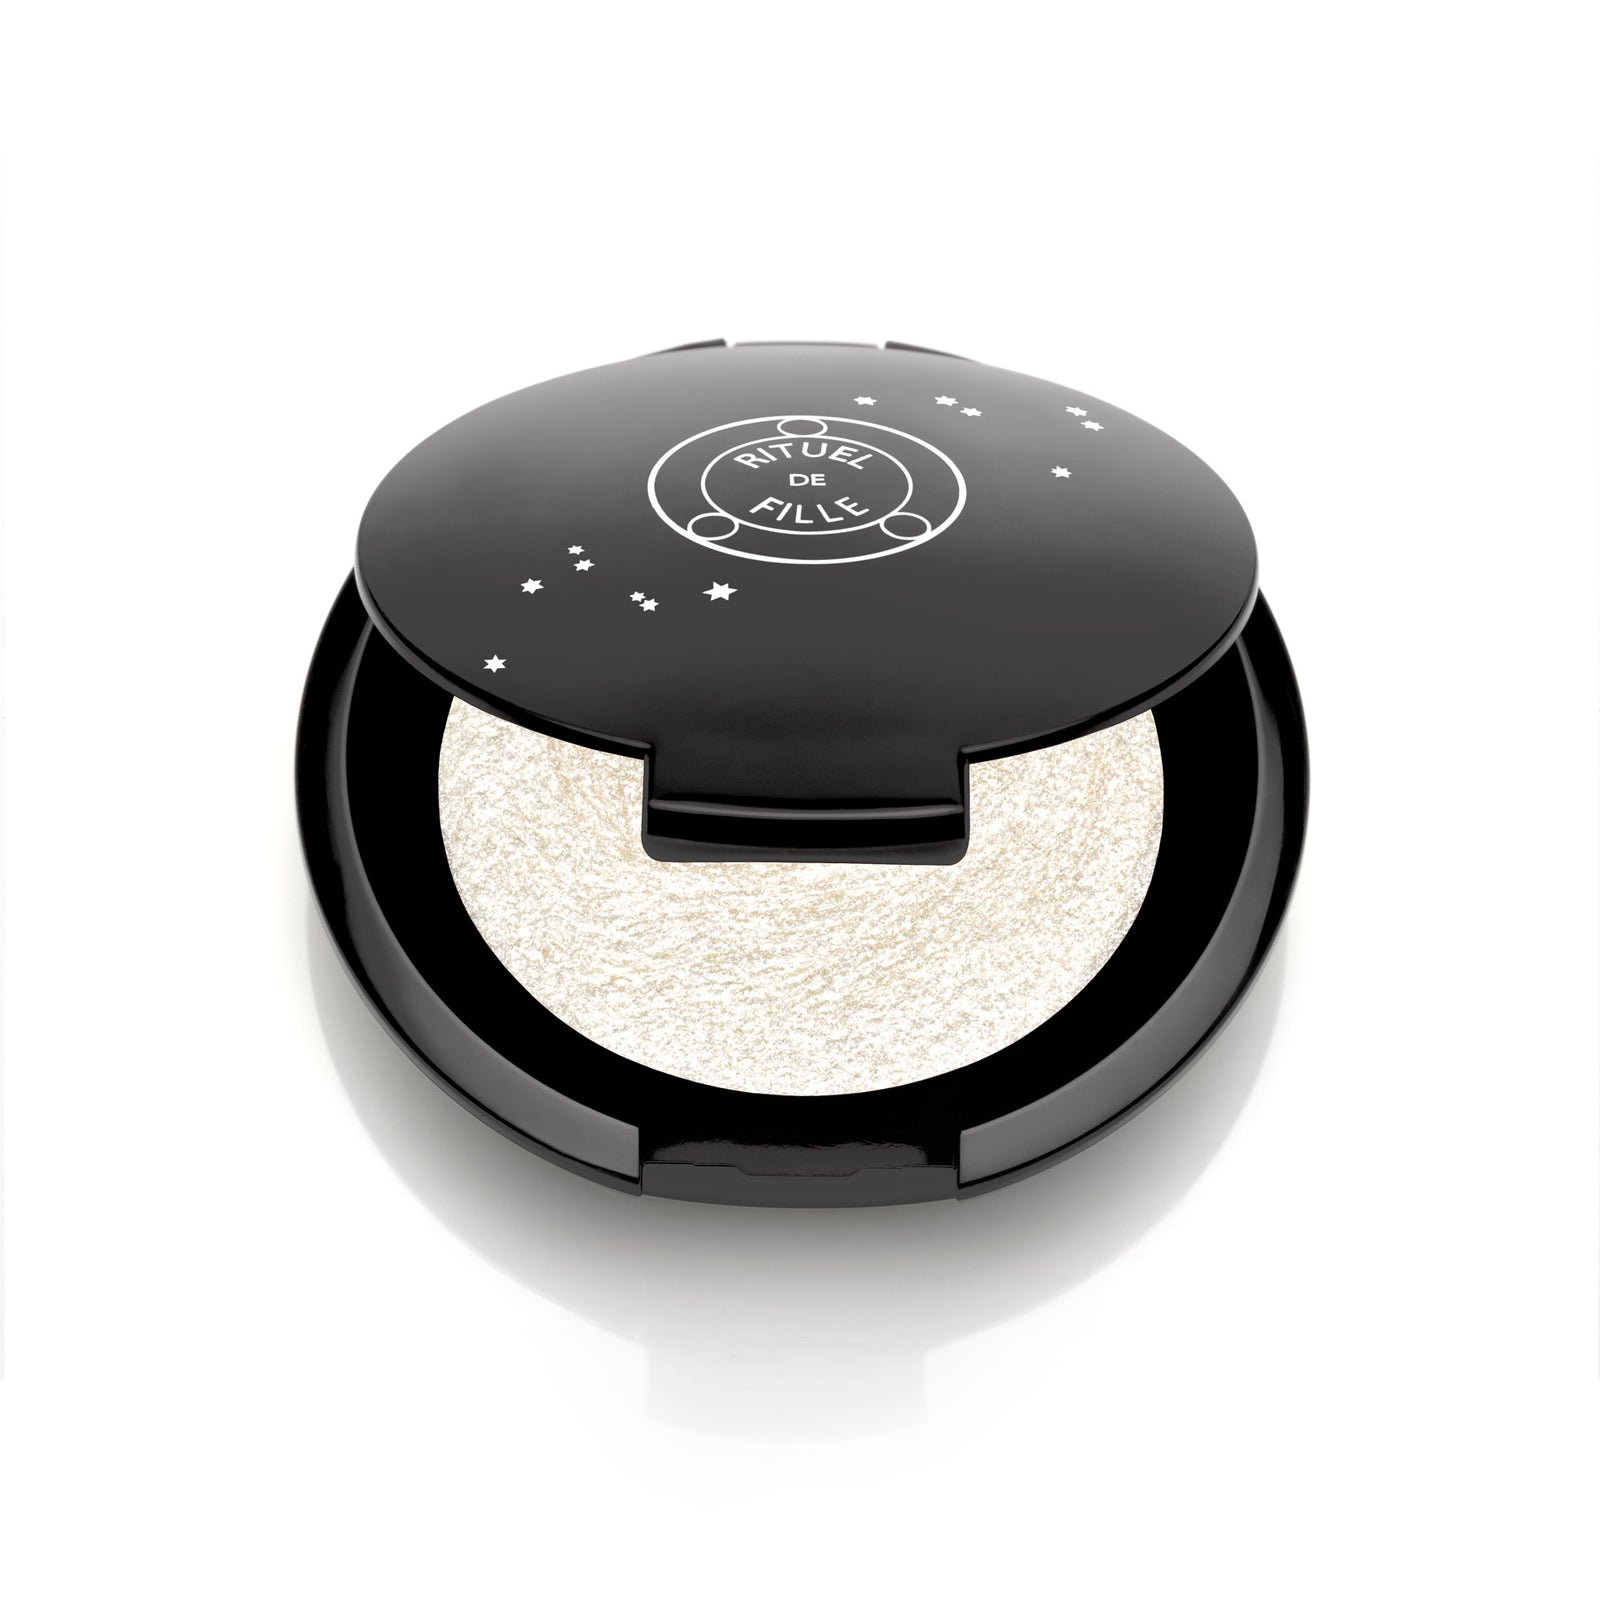 Rituel de Fille The Sorcerer Metamorphic Highlighter silver iridescent glow